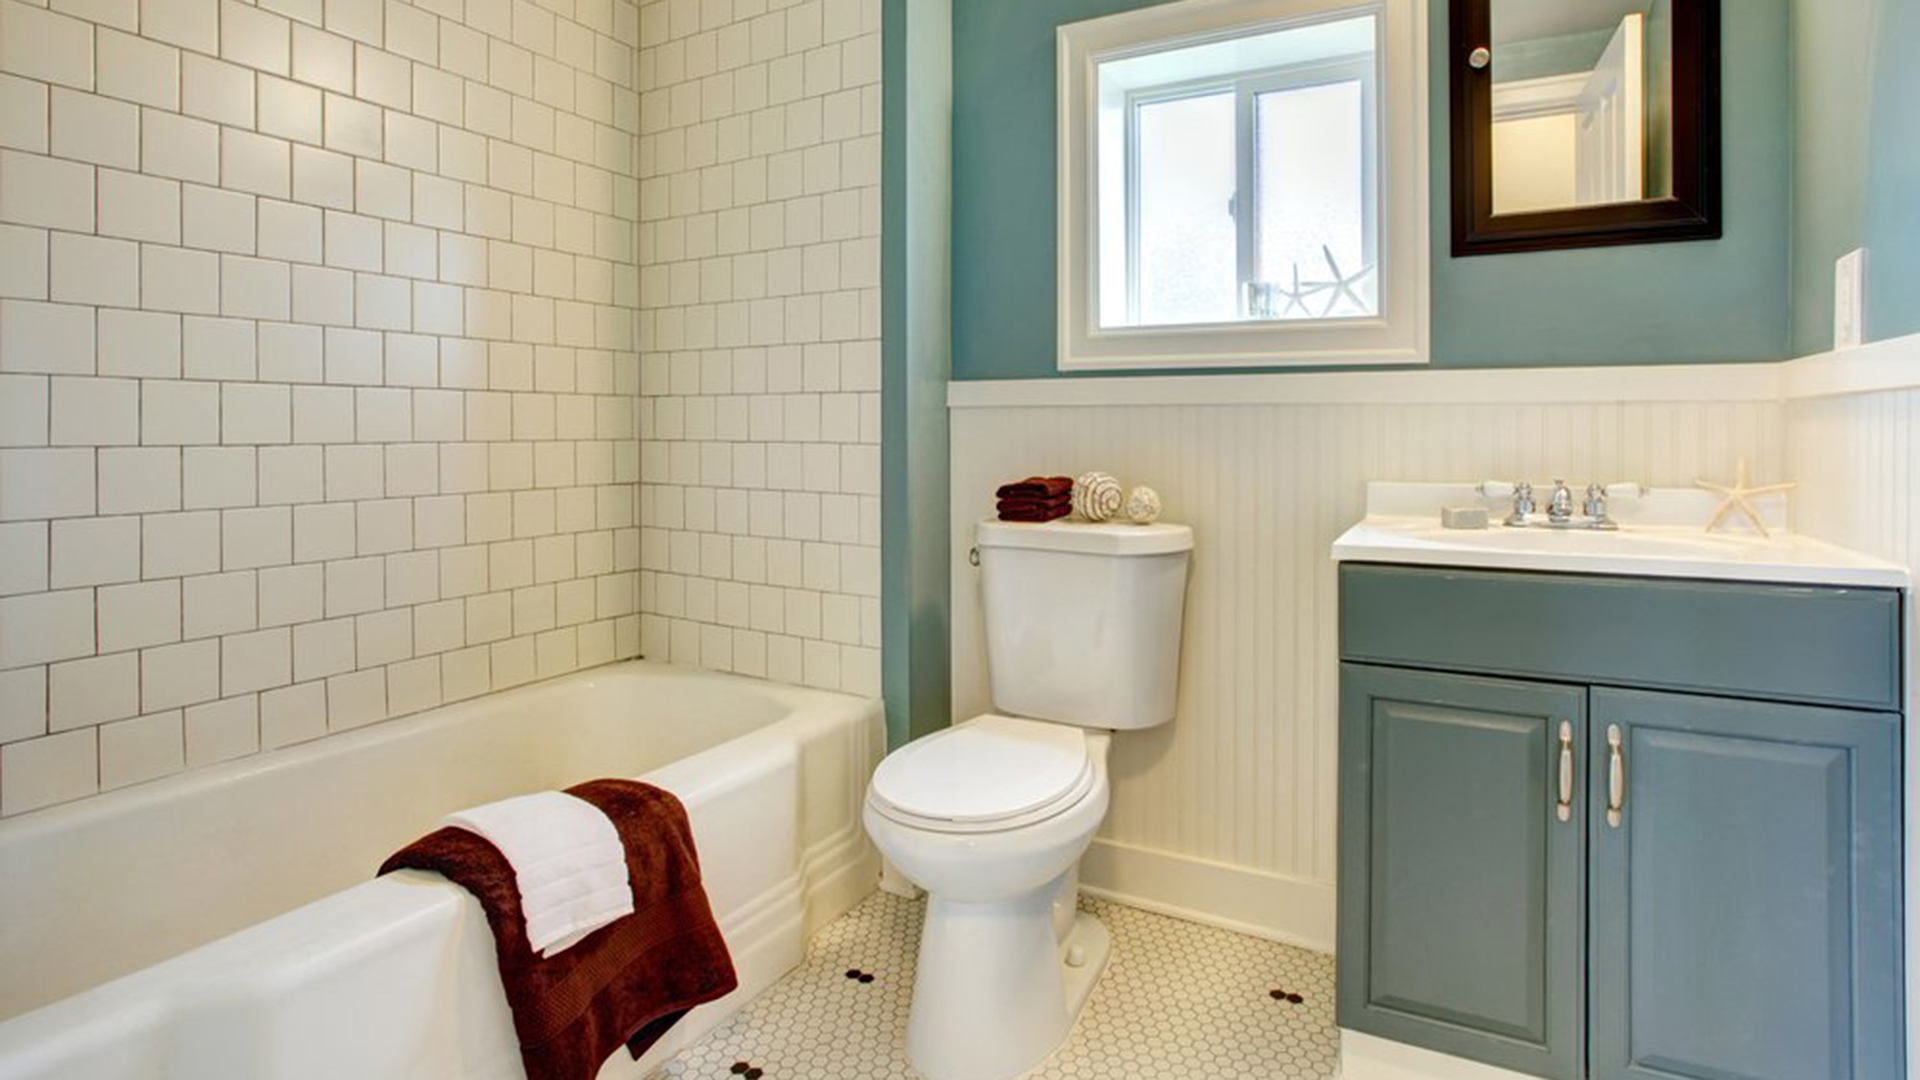 Generous Marble Bathroom Flooring Pros And Cons Thick Build Your Own Bathroom Vanity Square Tiled Bathroom Shower Photos Delta Bathroom Sink Faucet Parts Diagram Youthful Lamps For Bathroom Vanities RedSmall Freestanding Roll Top Bath DIY Ways To Improve Rental\u0026#39;s Bathroom   TODAY